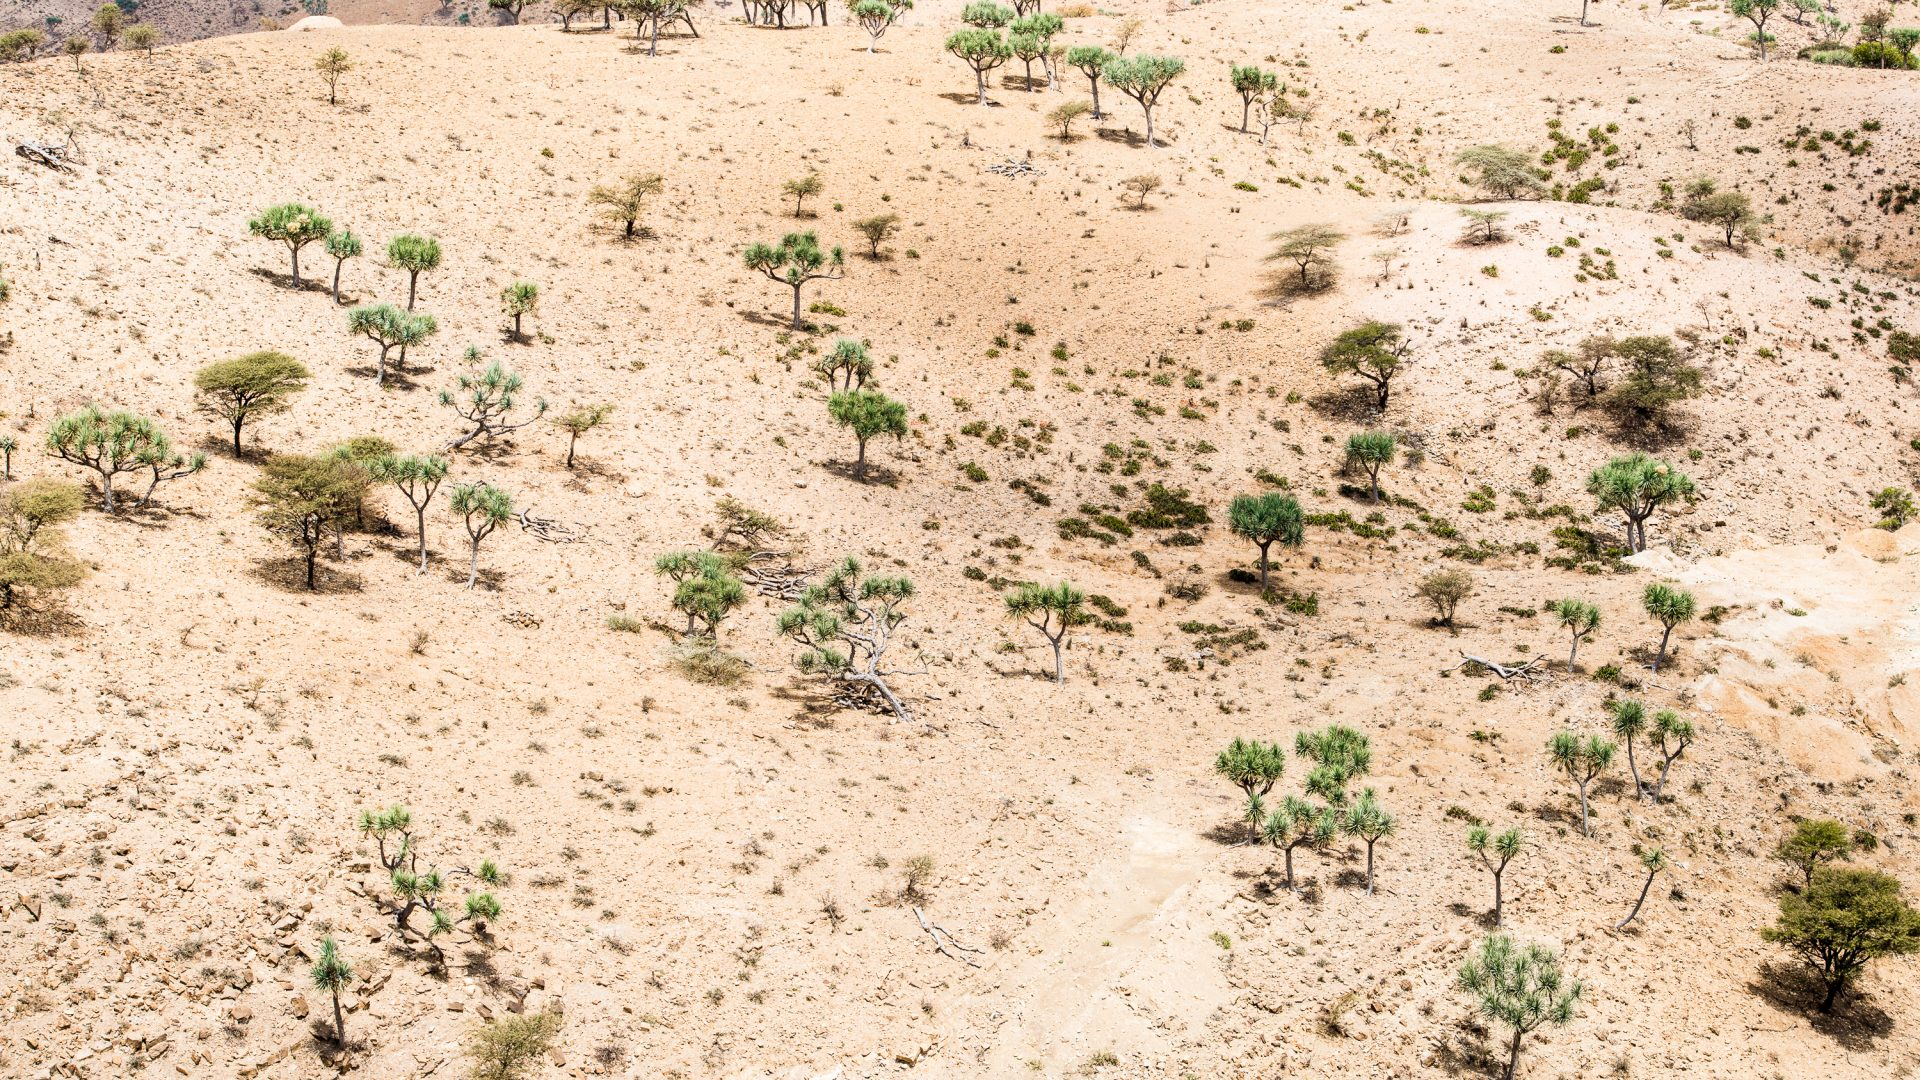 Green trees break up the vasts arid plains in the area surrounding the Danakil Depression in Ethiopia.